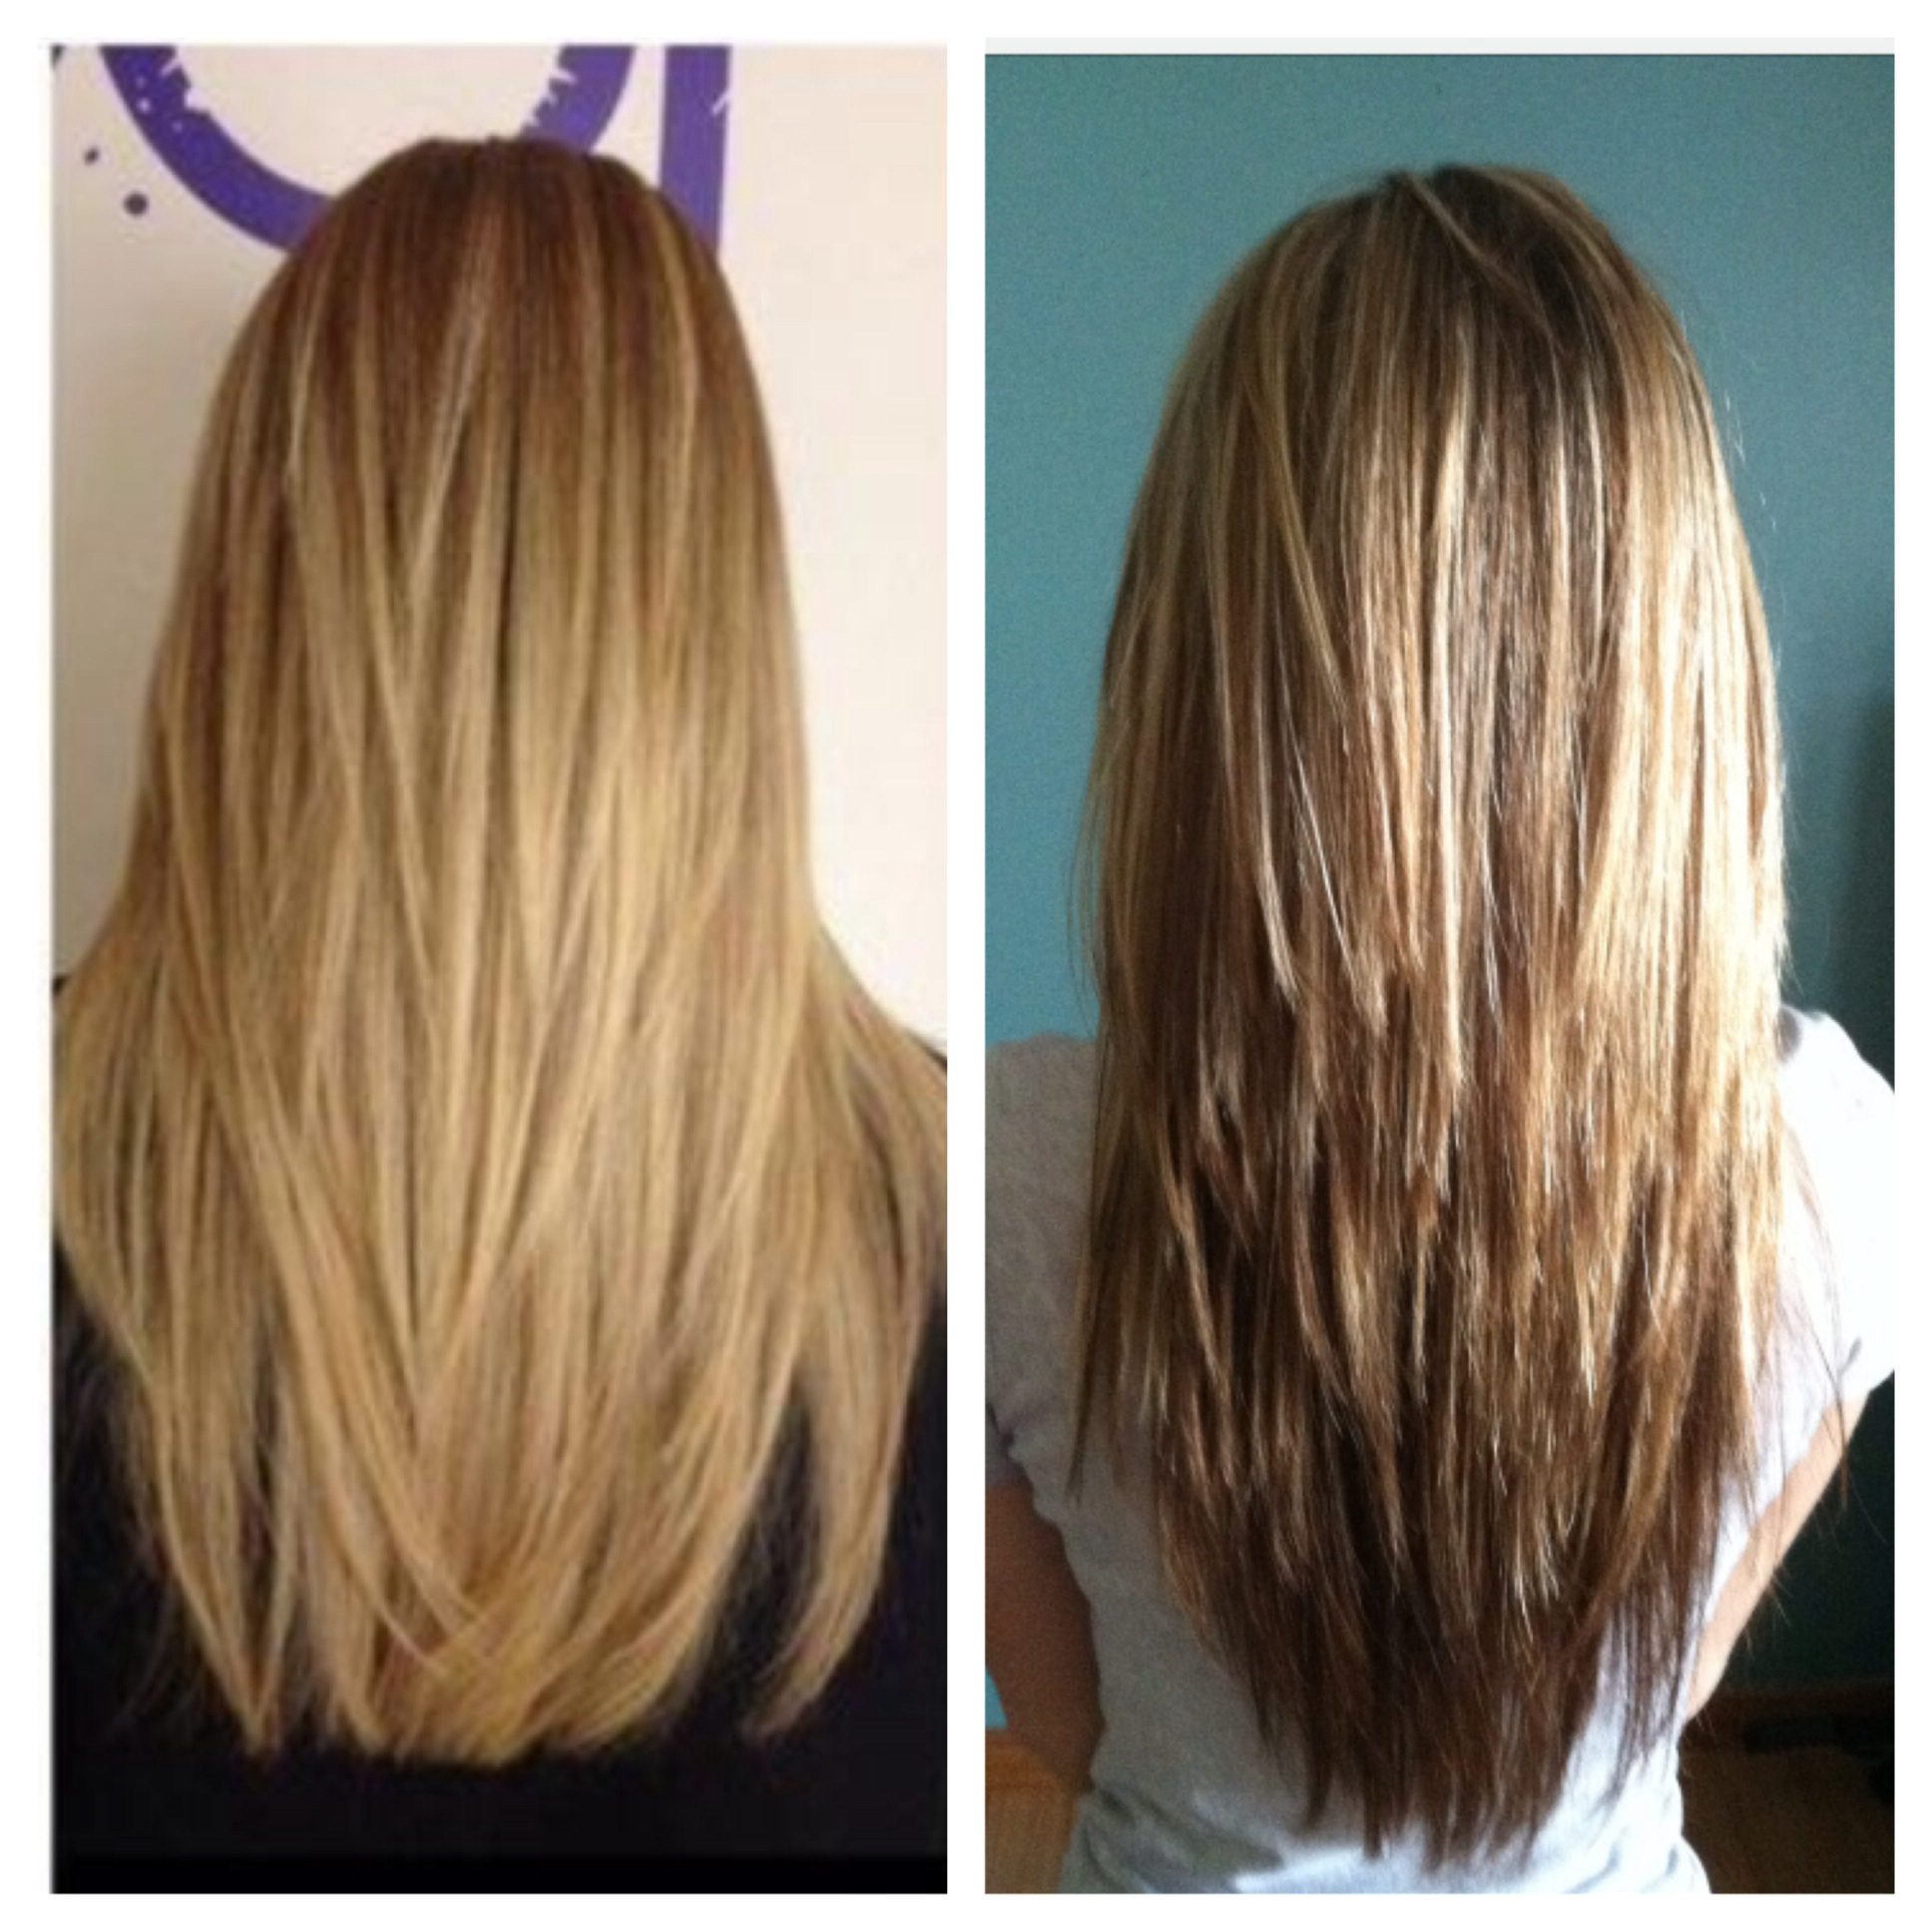 Find Out Full Gallery Of Perfect V Shaped Long Layered Hair Within V Shaped Layered Short Haircuts (View 6 of 25)